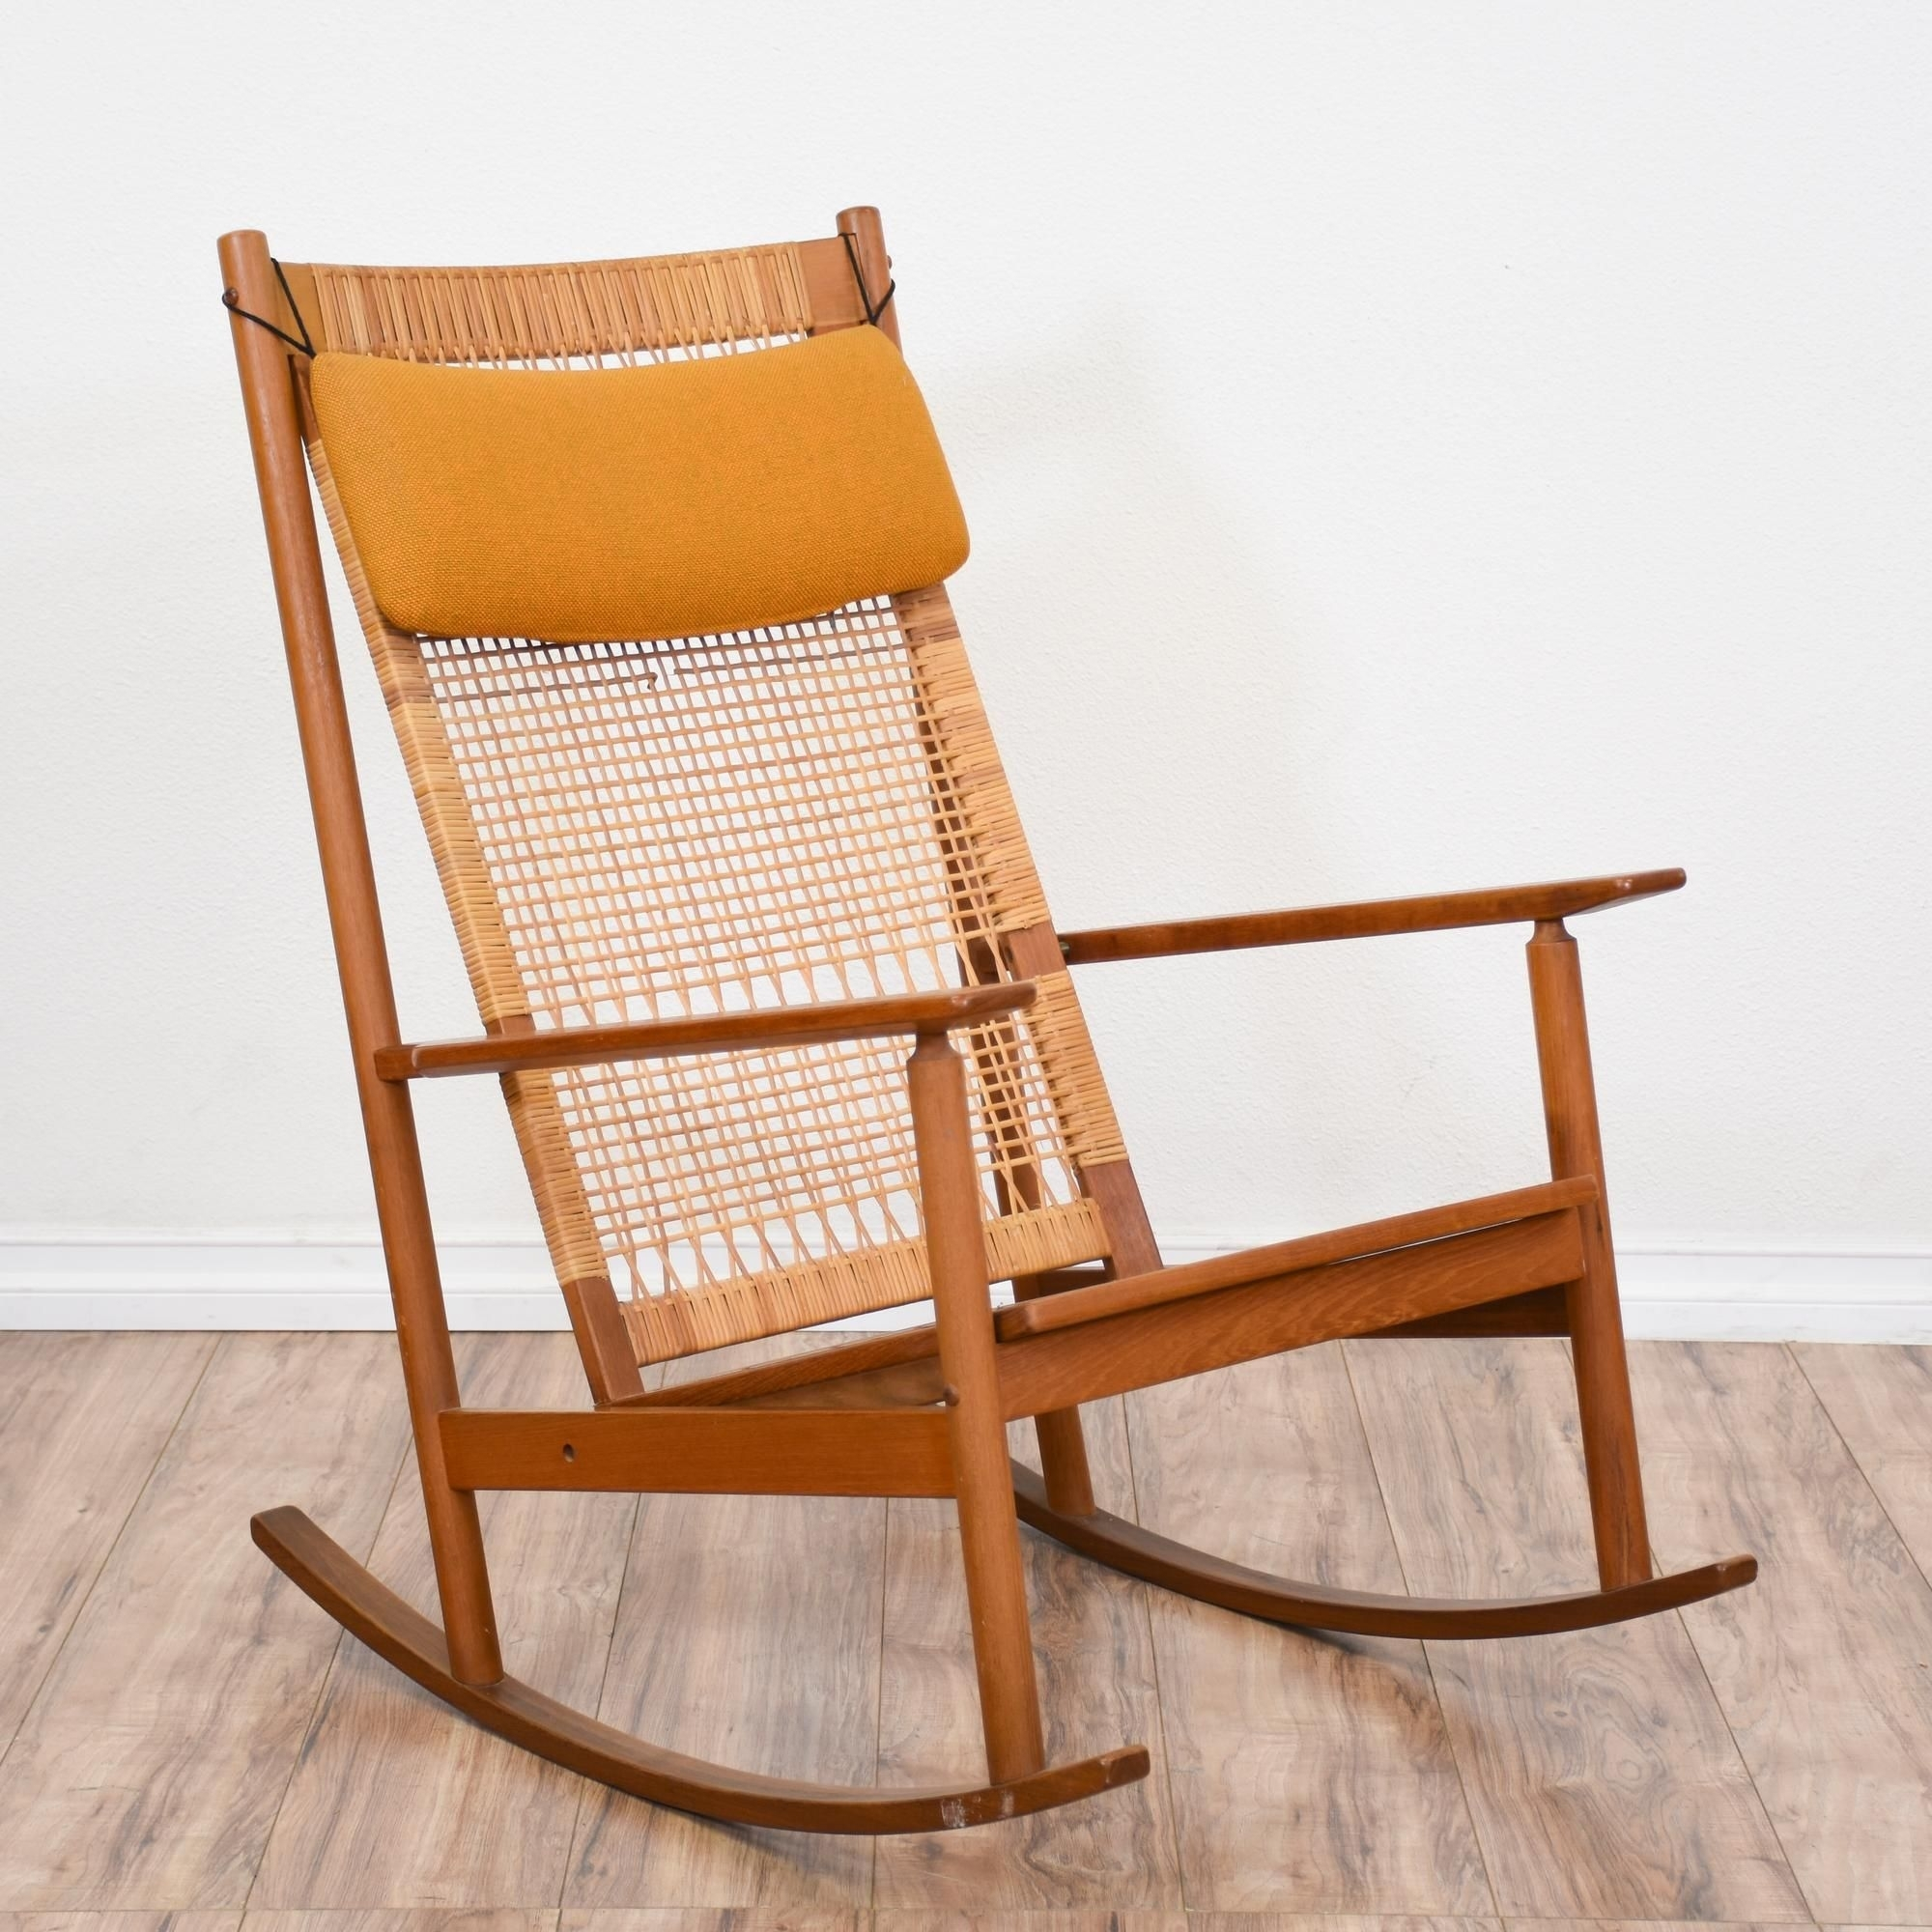 Inspiration about This Mid Century Modern Rocking Chair Featured Solid Wood Yellow Pertaining To Yellow Outdoor Rocking Chairs (#11 of 15)